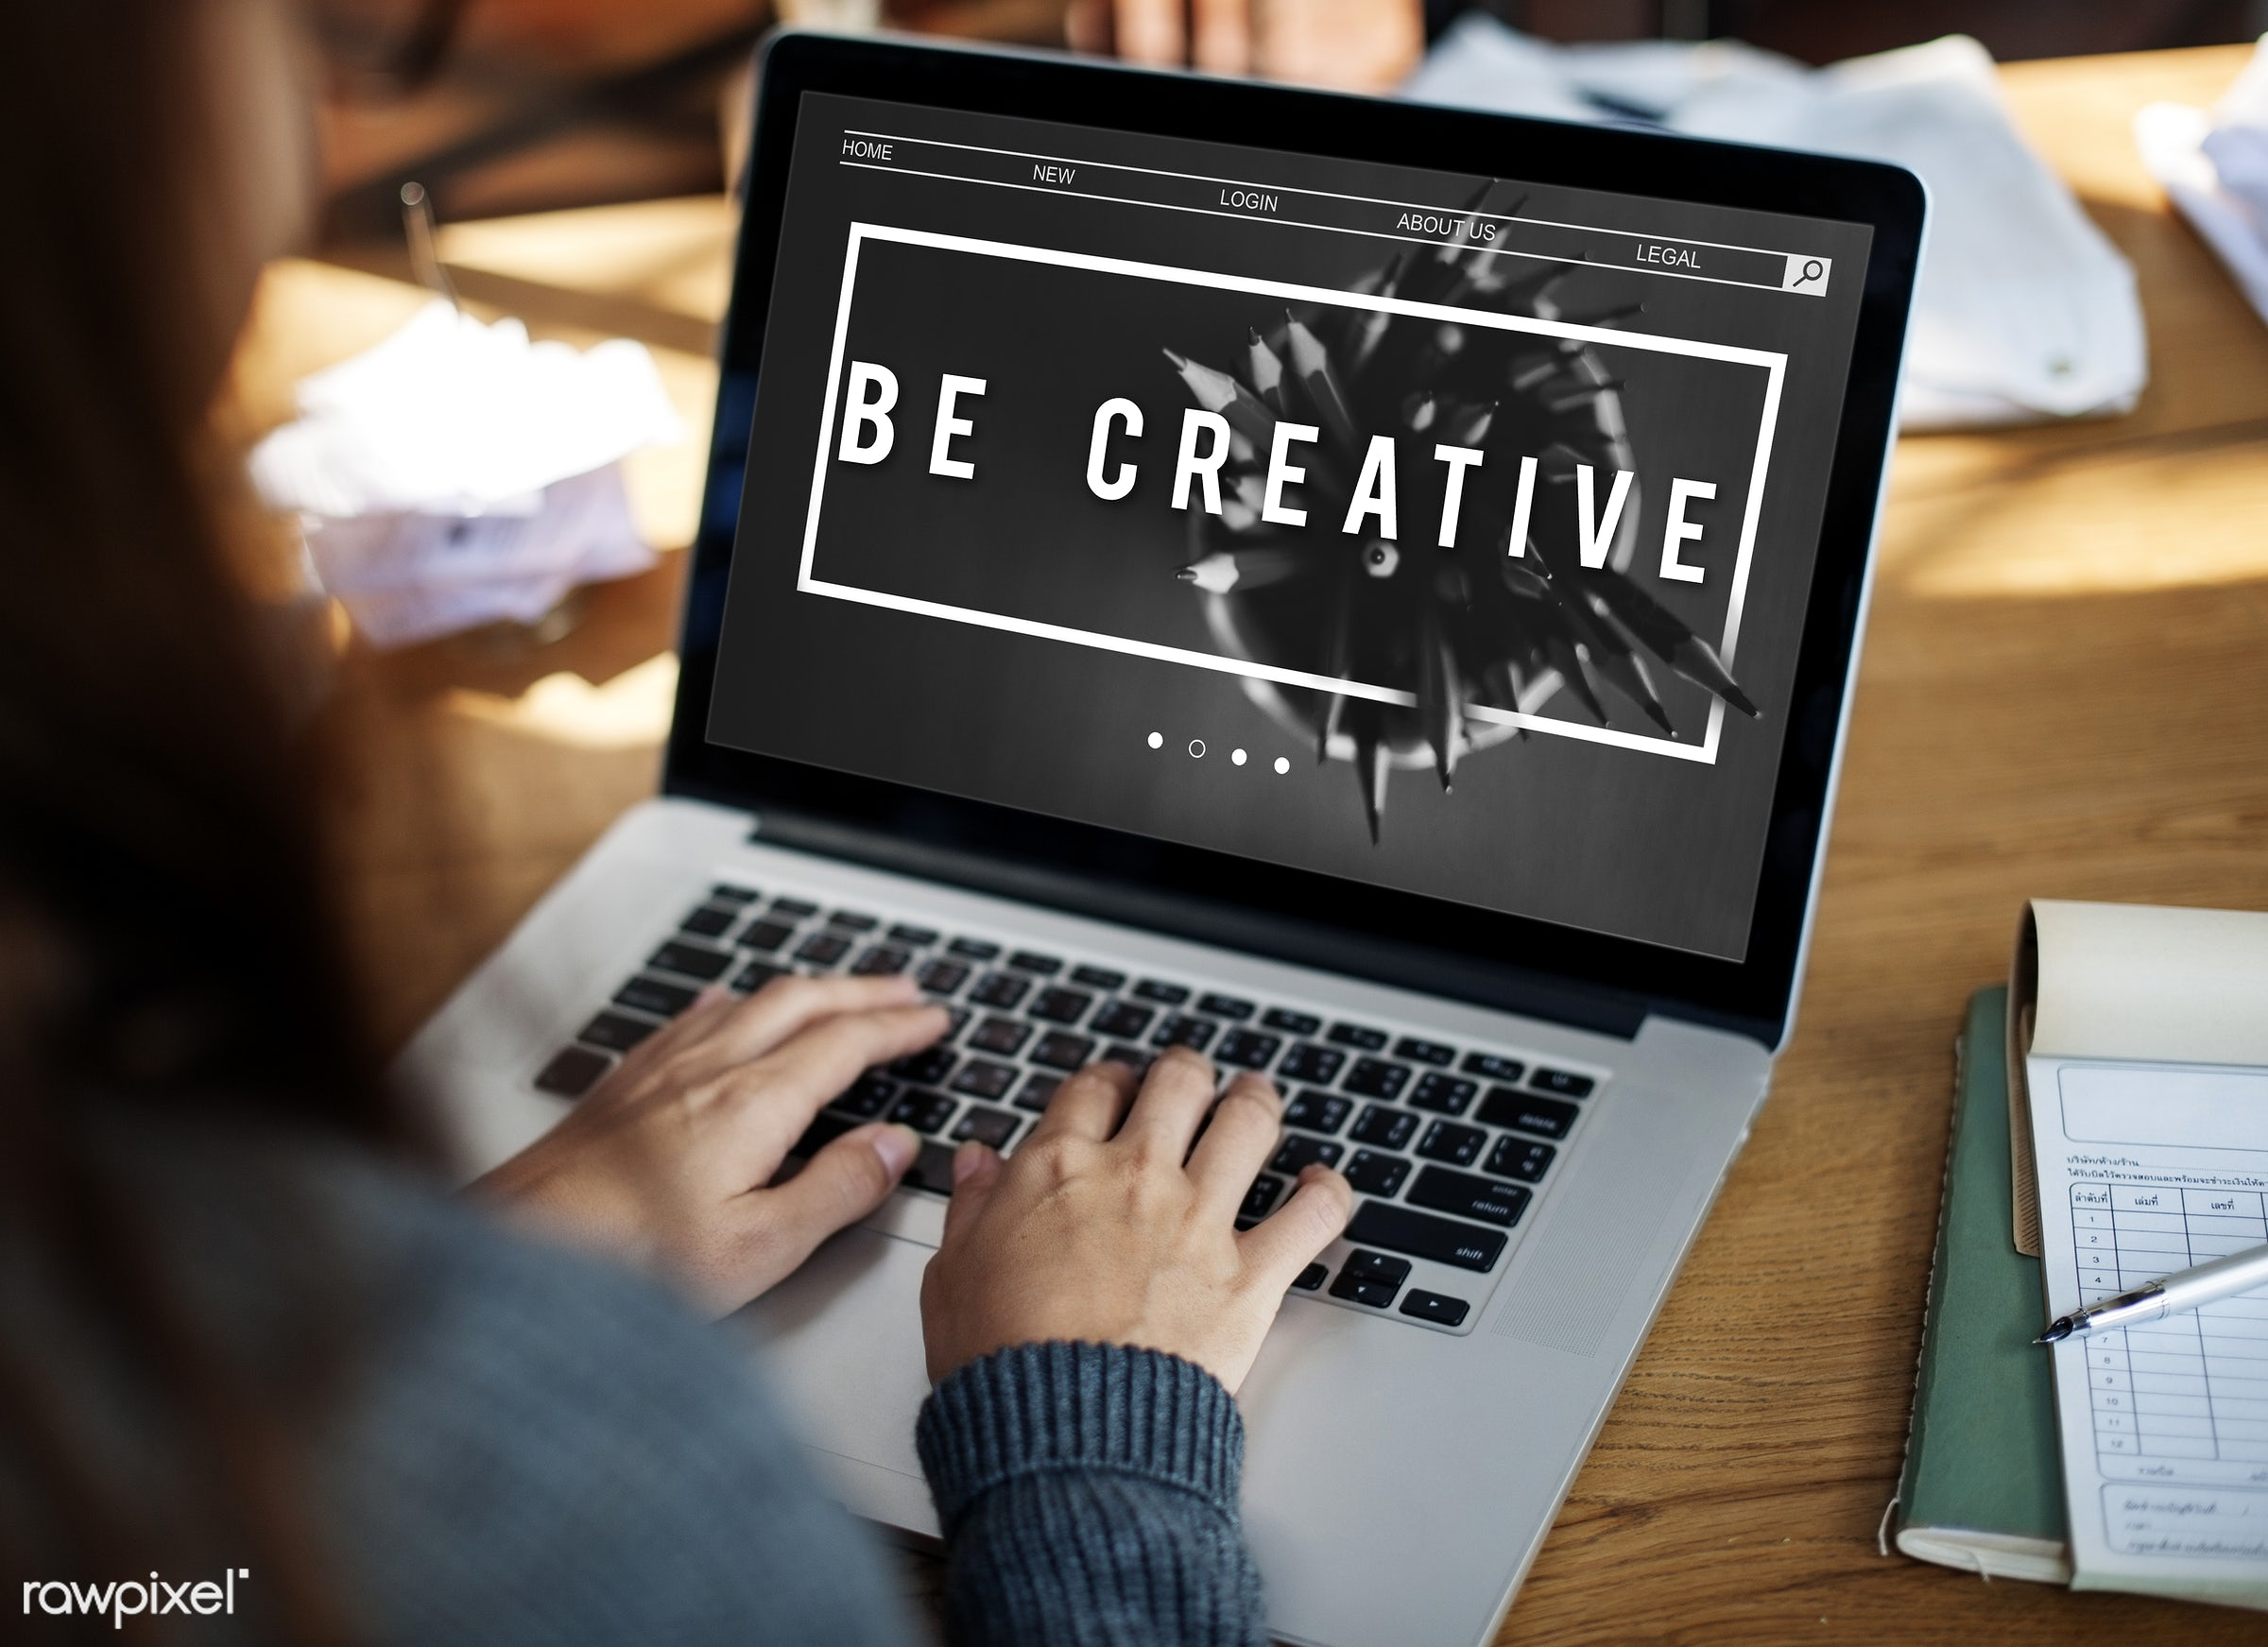 about, about us, be creative, browsing, concept, creative, creativity, design, device, digital, digital device, fresh ideas...